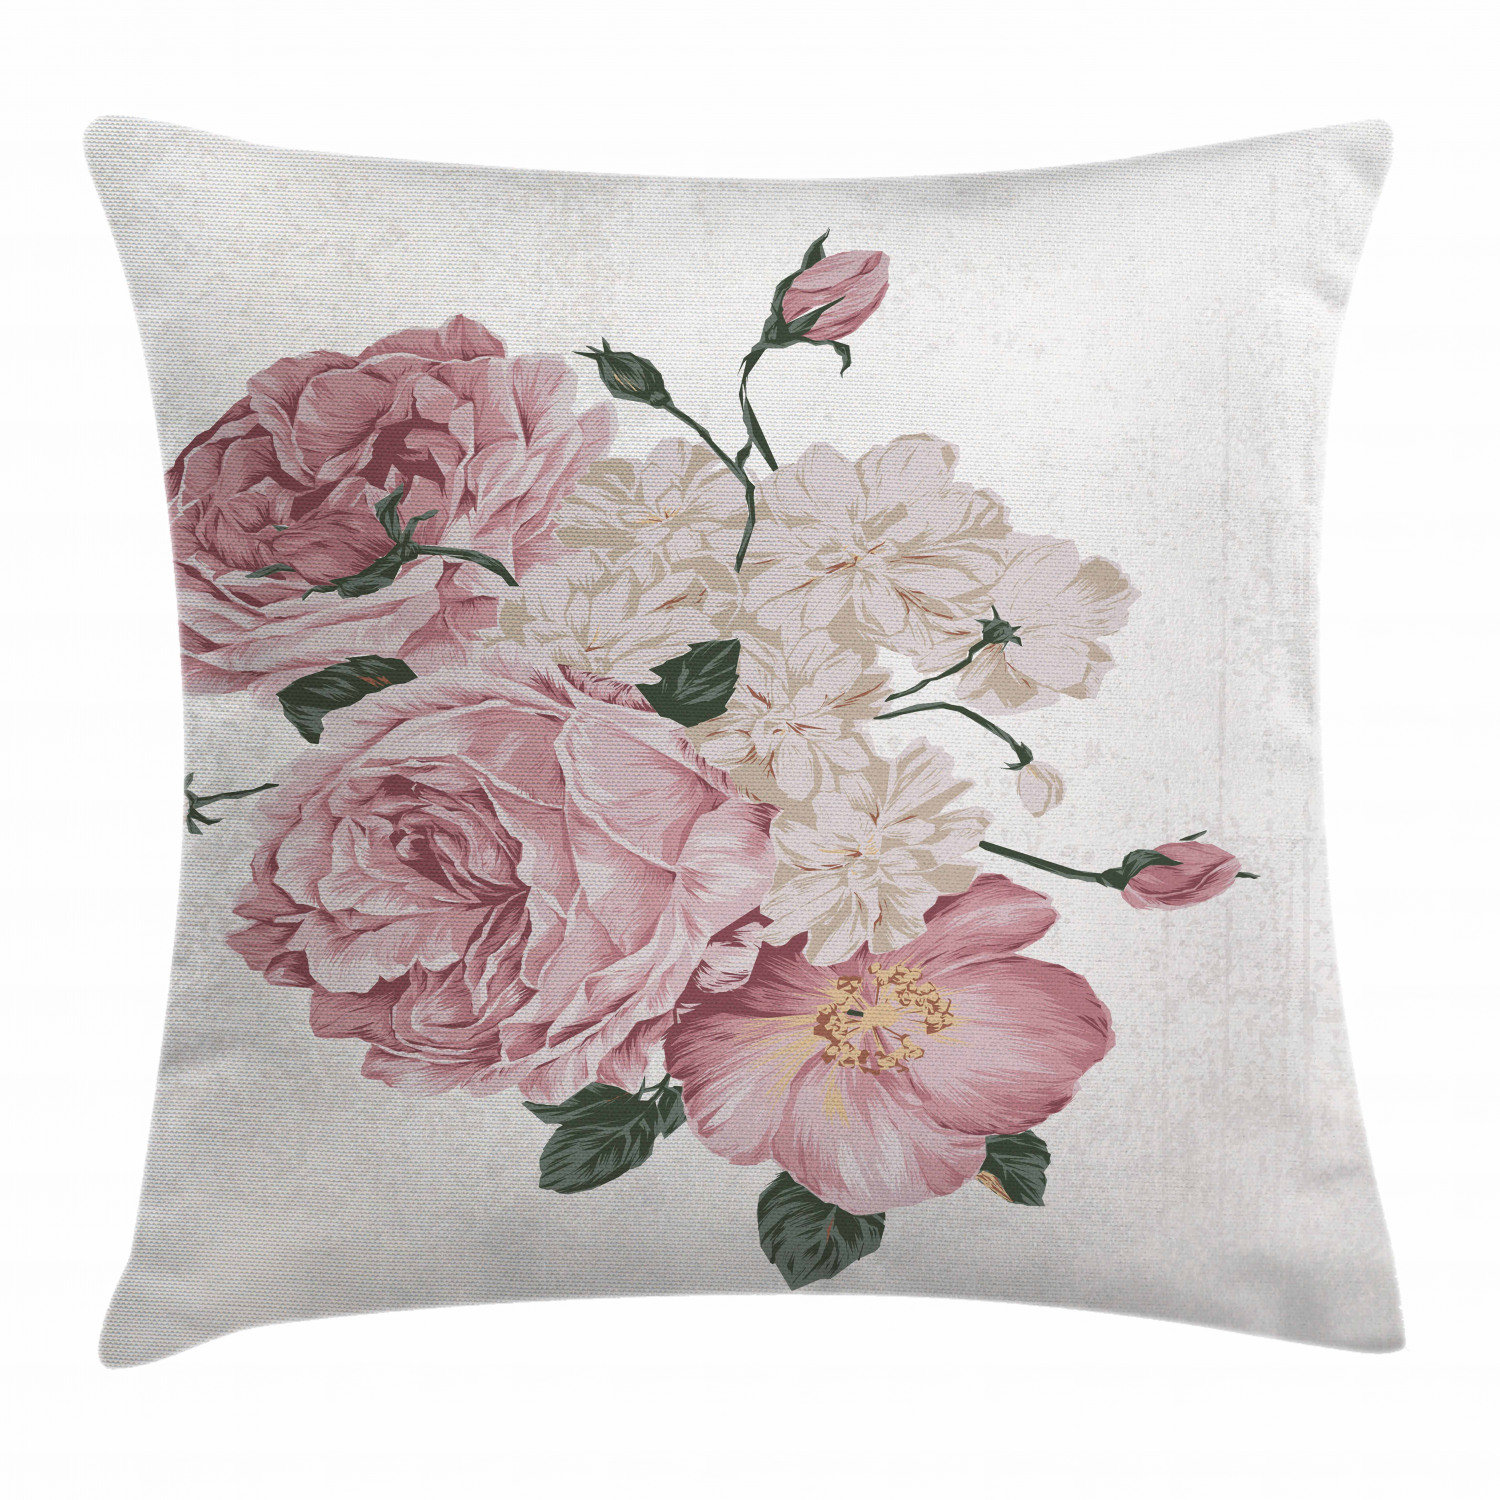 rose throw pillow cushion cover old vintage roses corsage on grunge background antique romantic springtime art decorative square accent pillow case